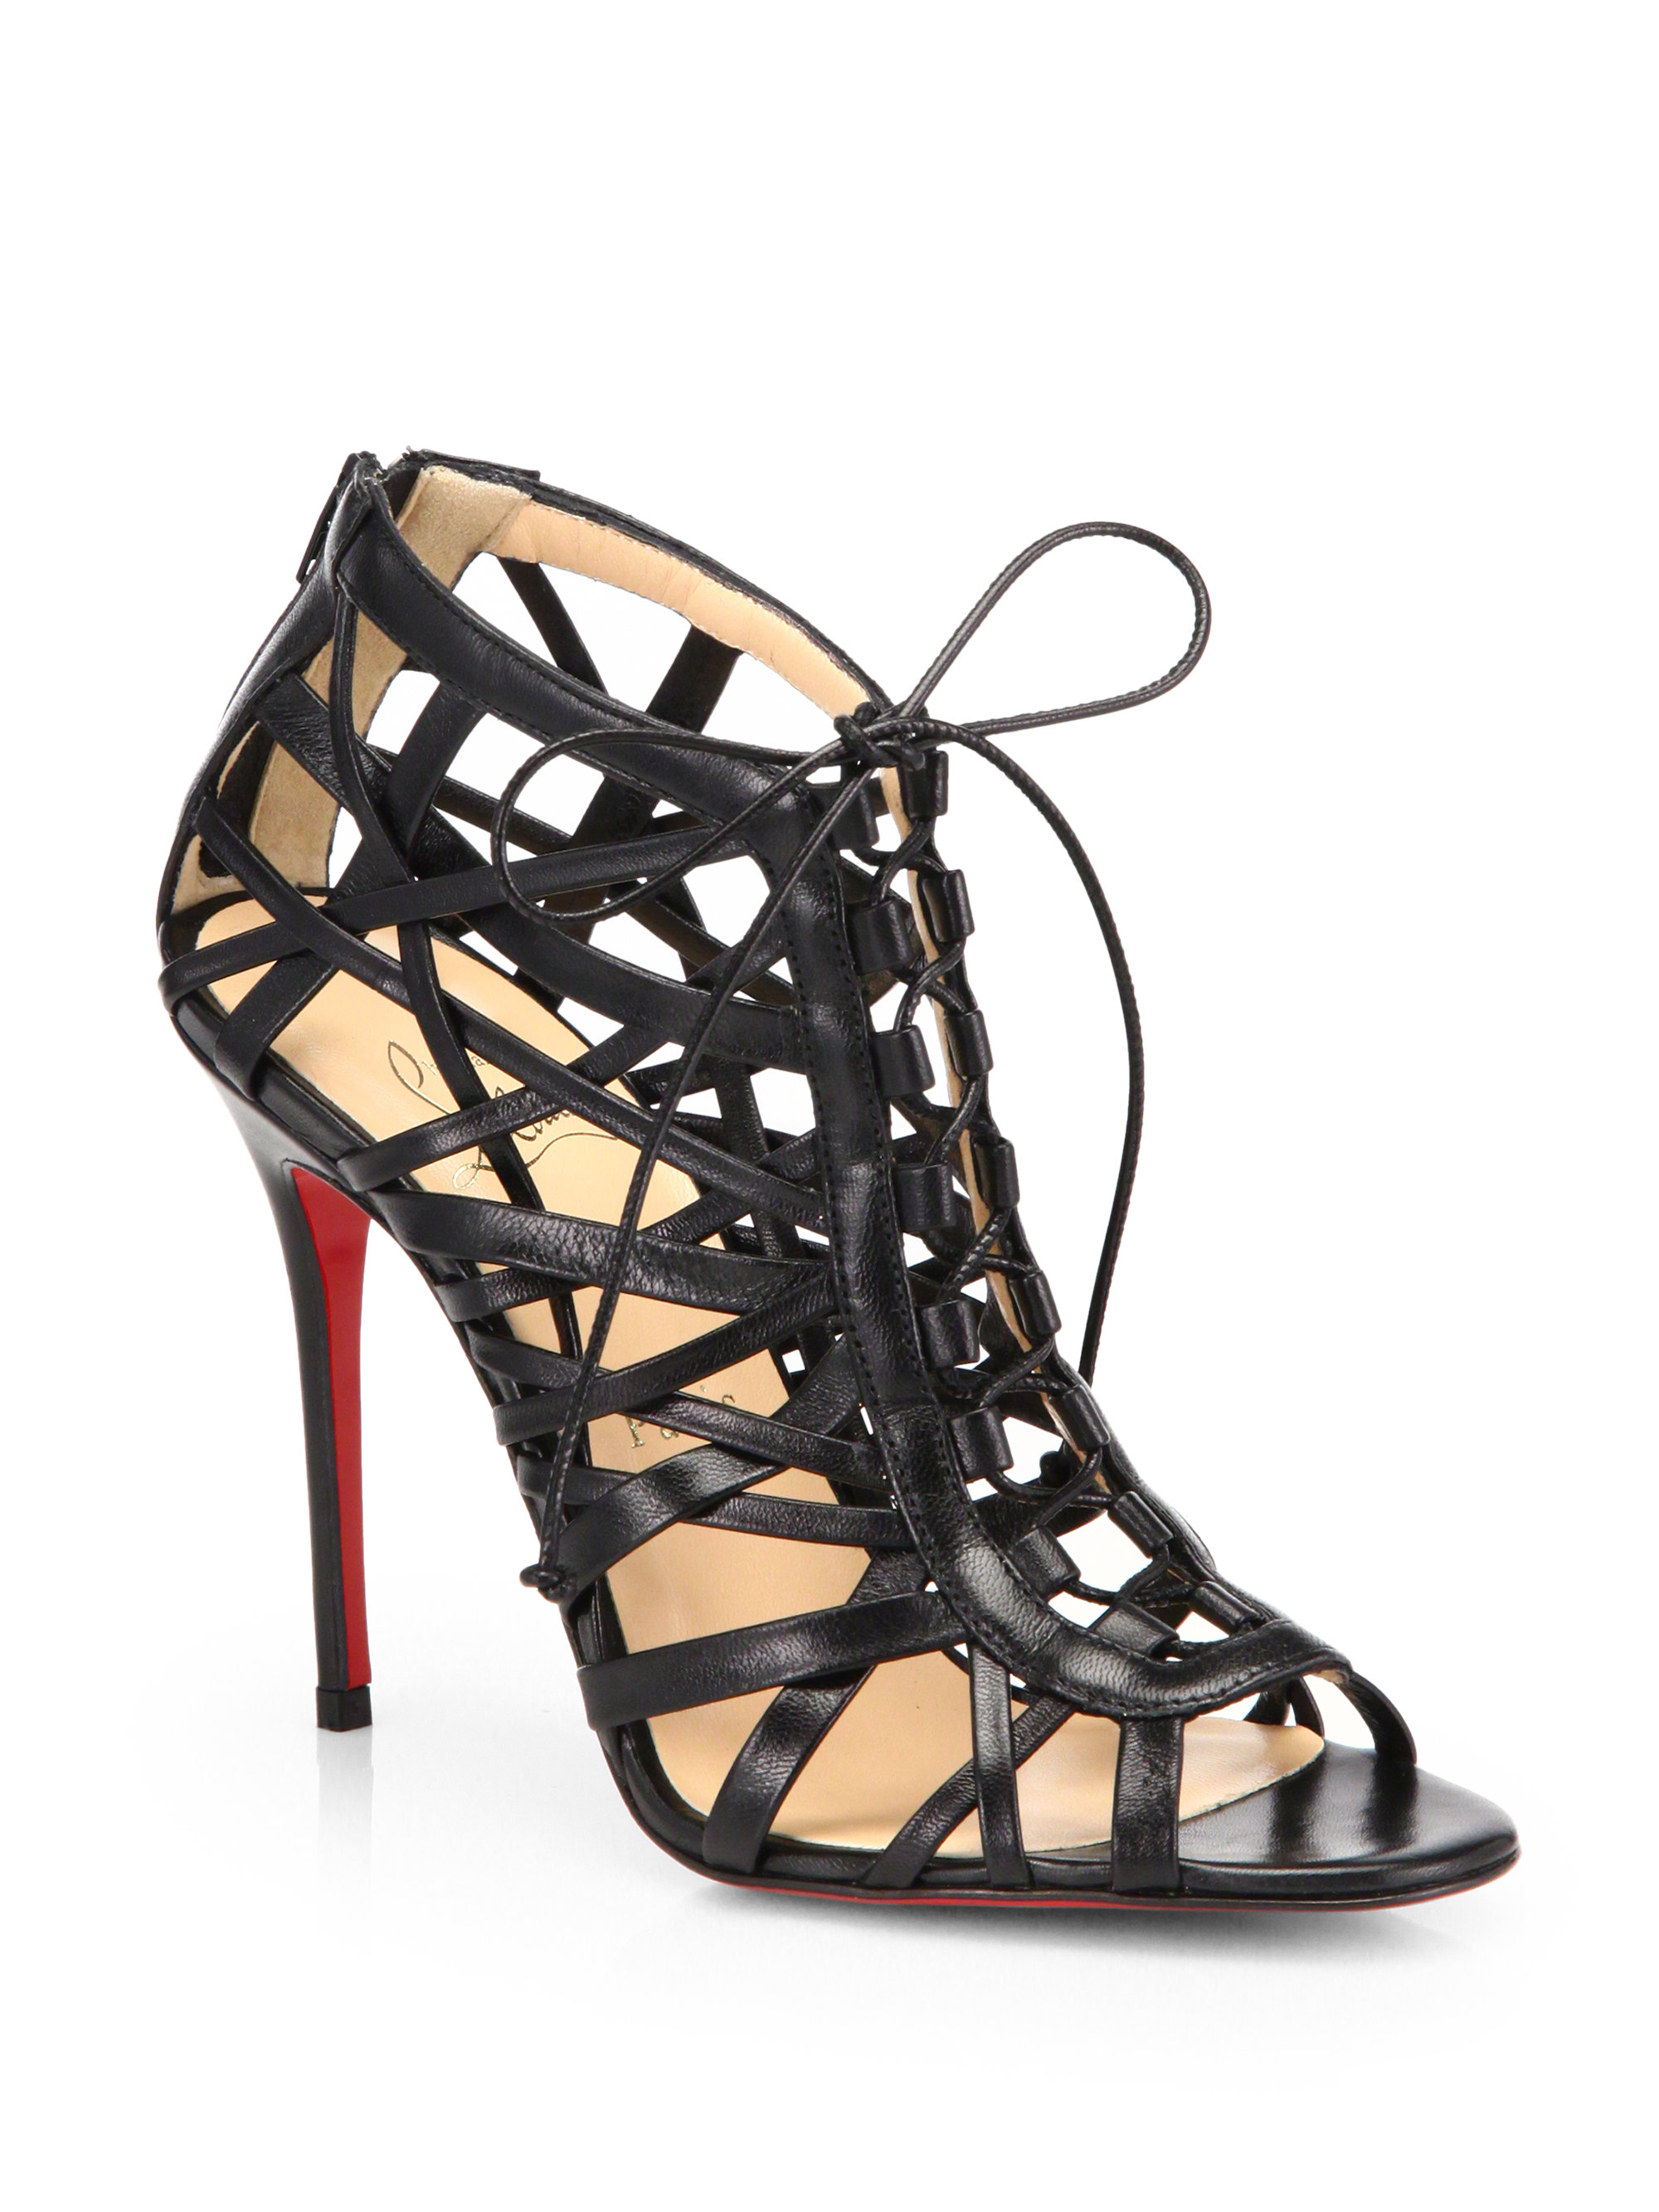 christian louboutin zoulou leather platform sandals - Obsidian ...